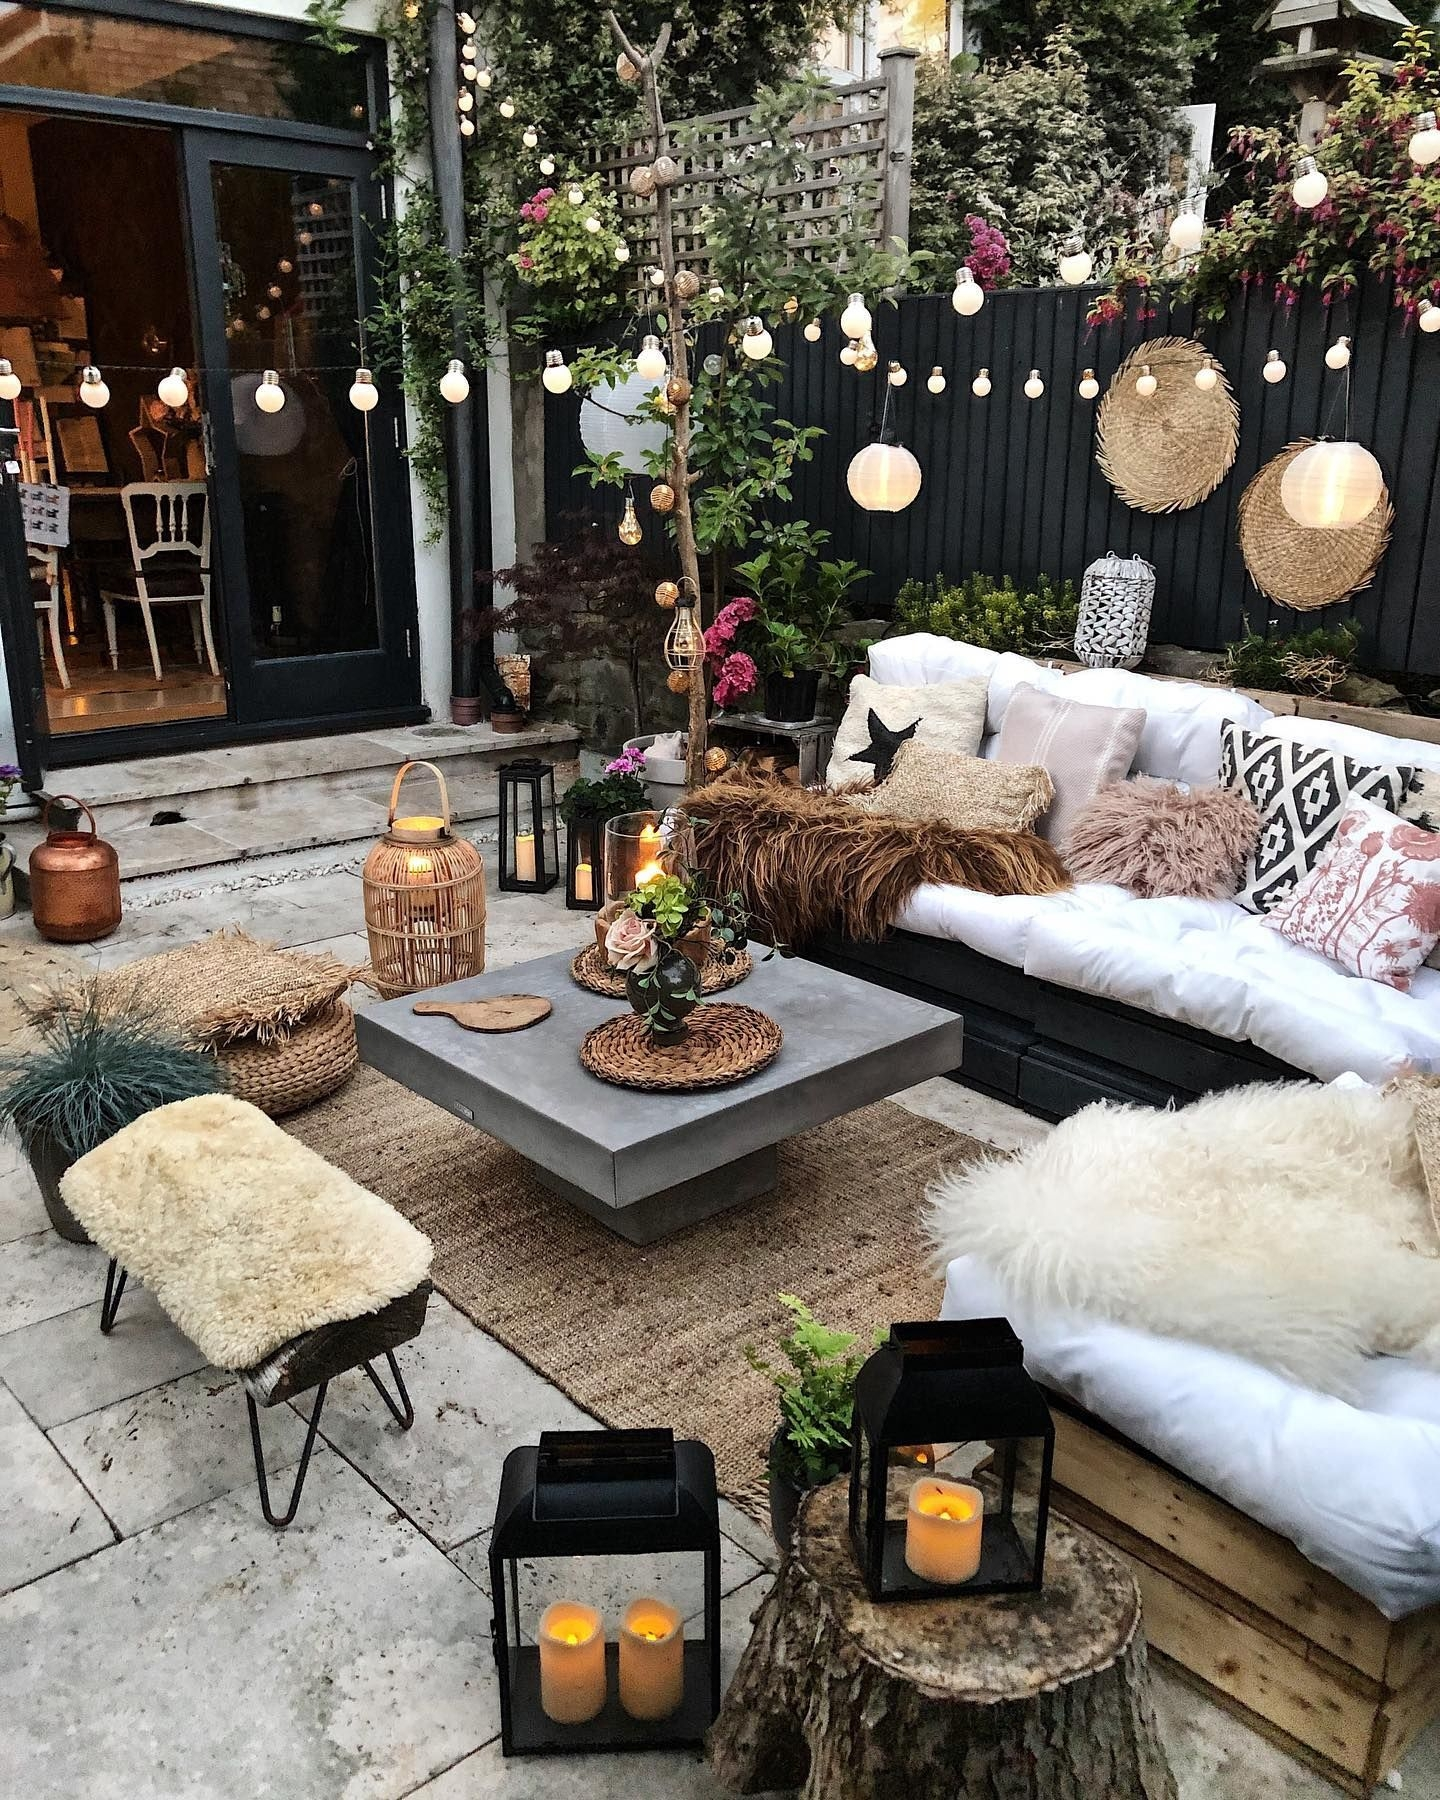 Beauteous Boho Living Room Decor On A Budget Ideas Spaces Living Room Chairs On Lovely Munity Lights4fun On Boho Living Room Decor On A Budget Ideas Spaces Living Room Chairs